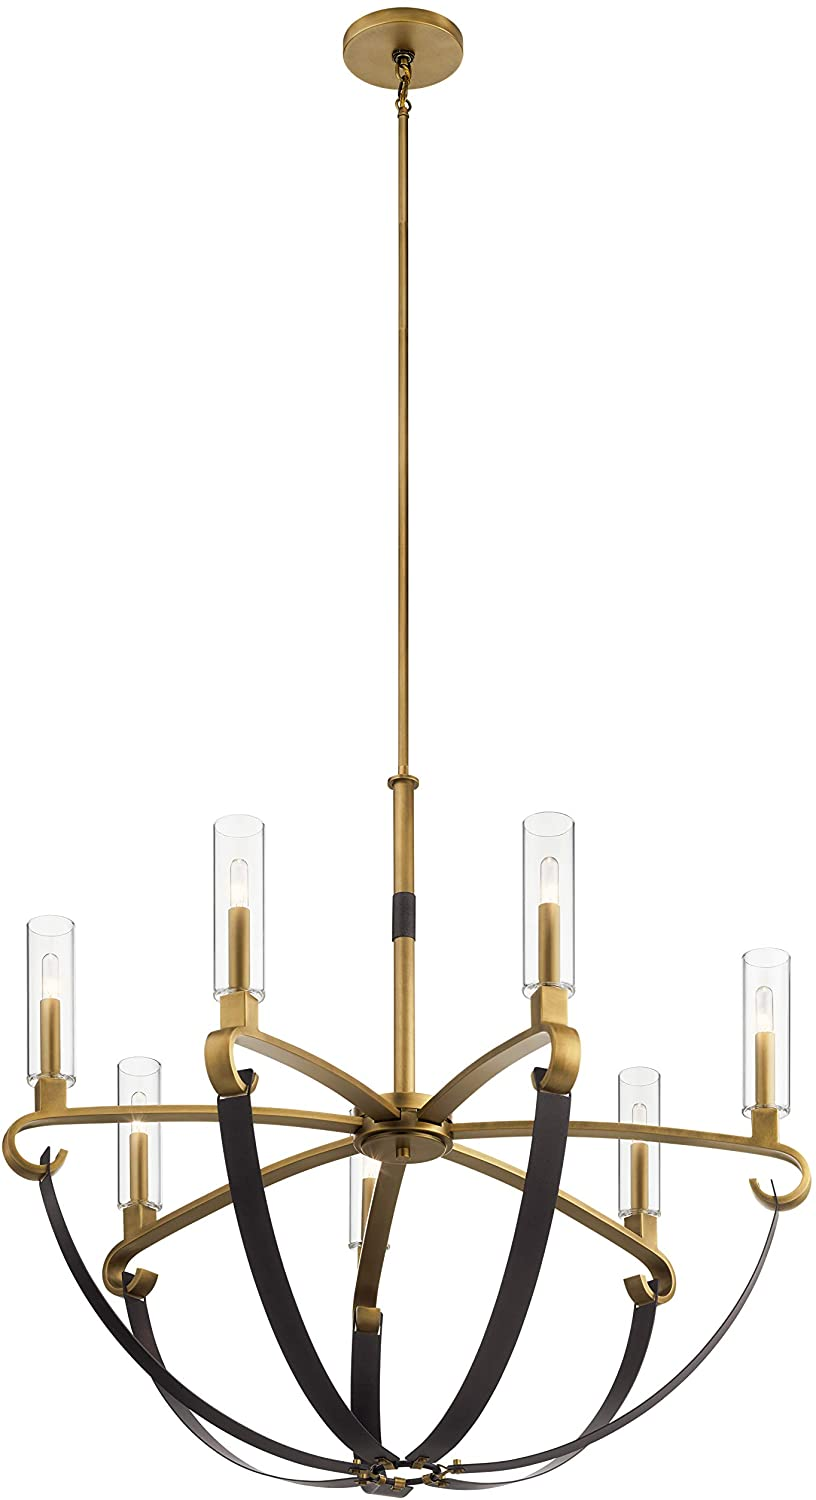 Kichler 52016NBR Artem Chandelier, 7-Light 420 Total Watts, Natural Brass